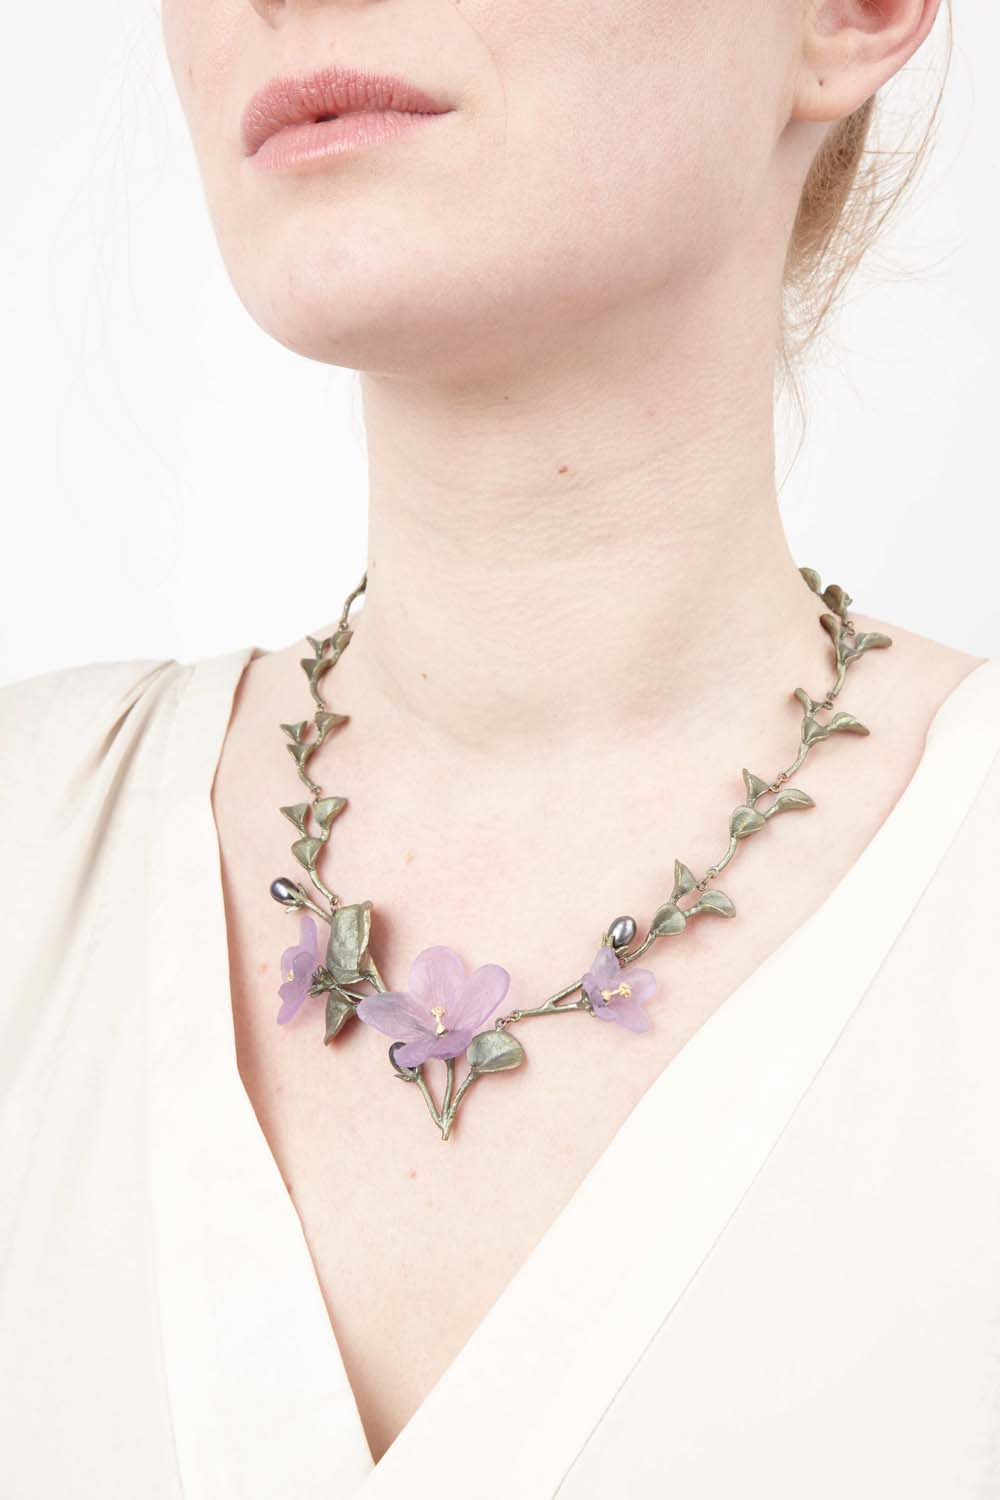 African Violet Necklace - Contour